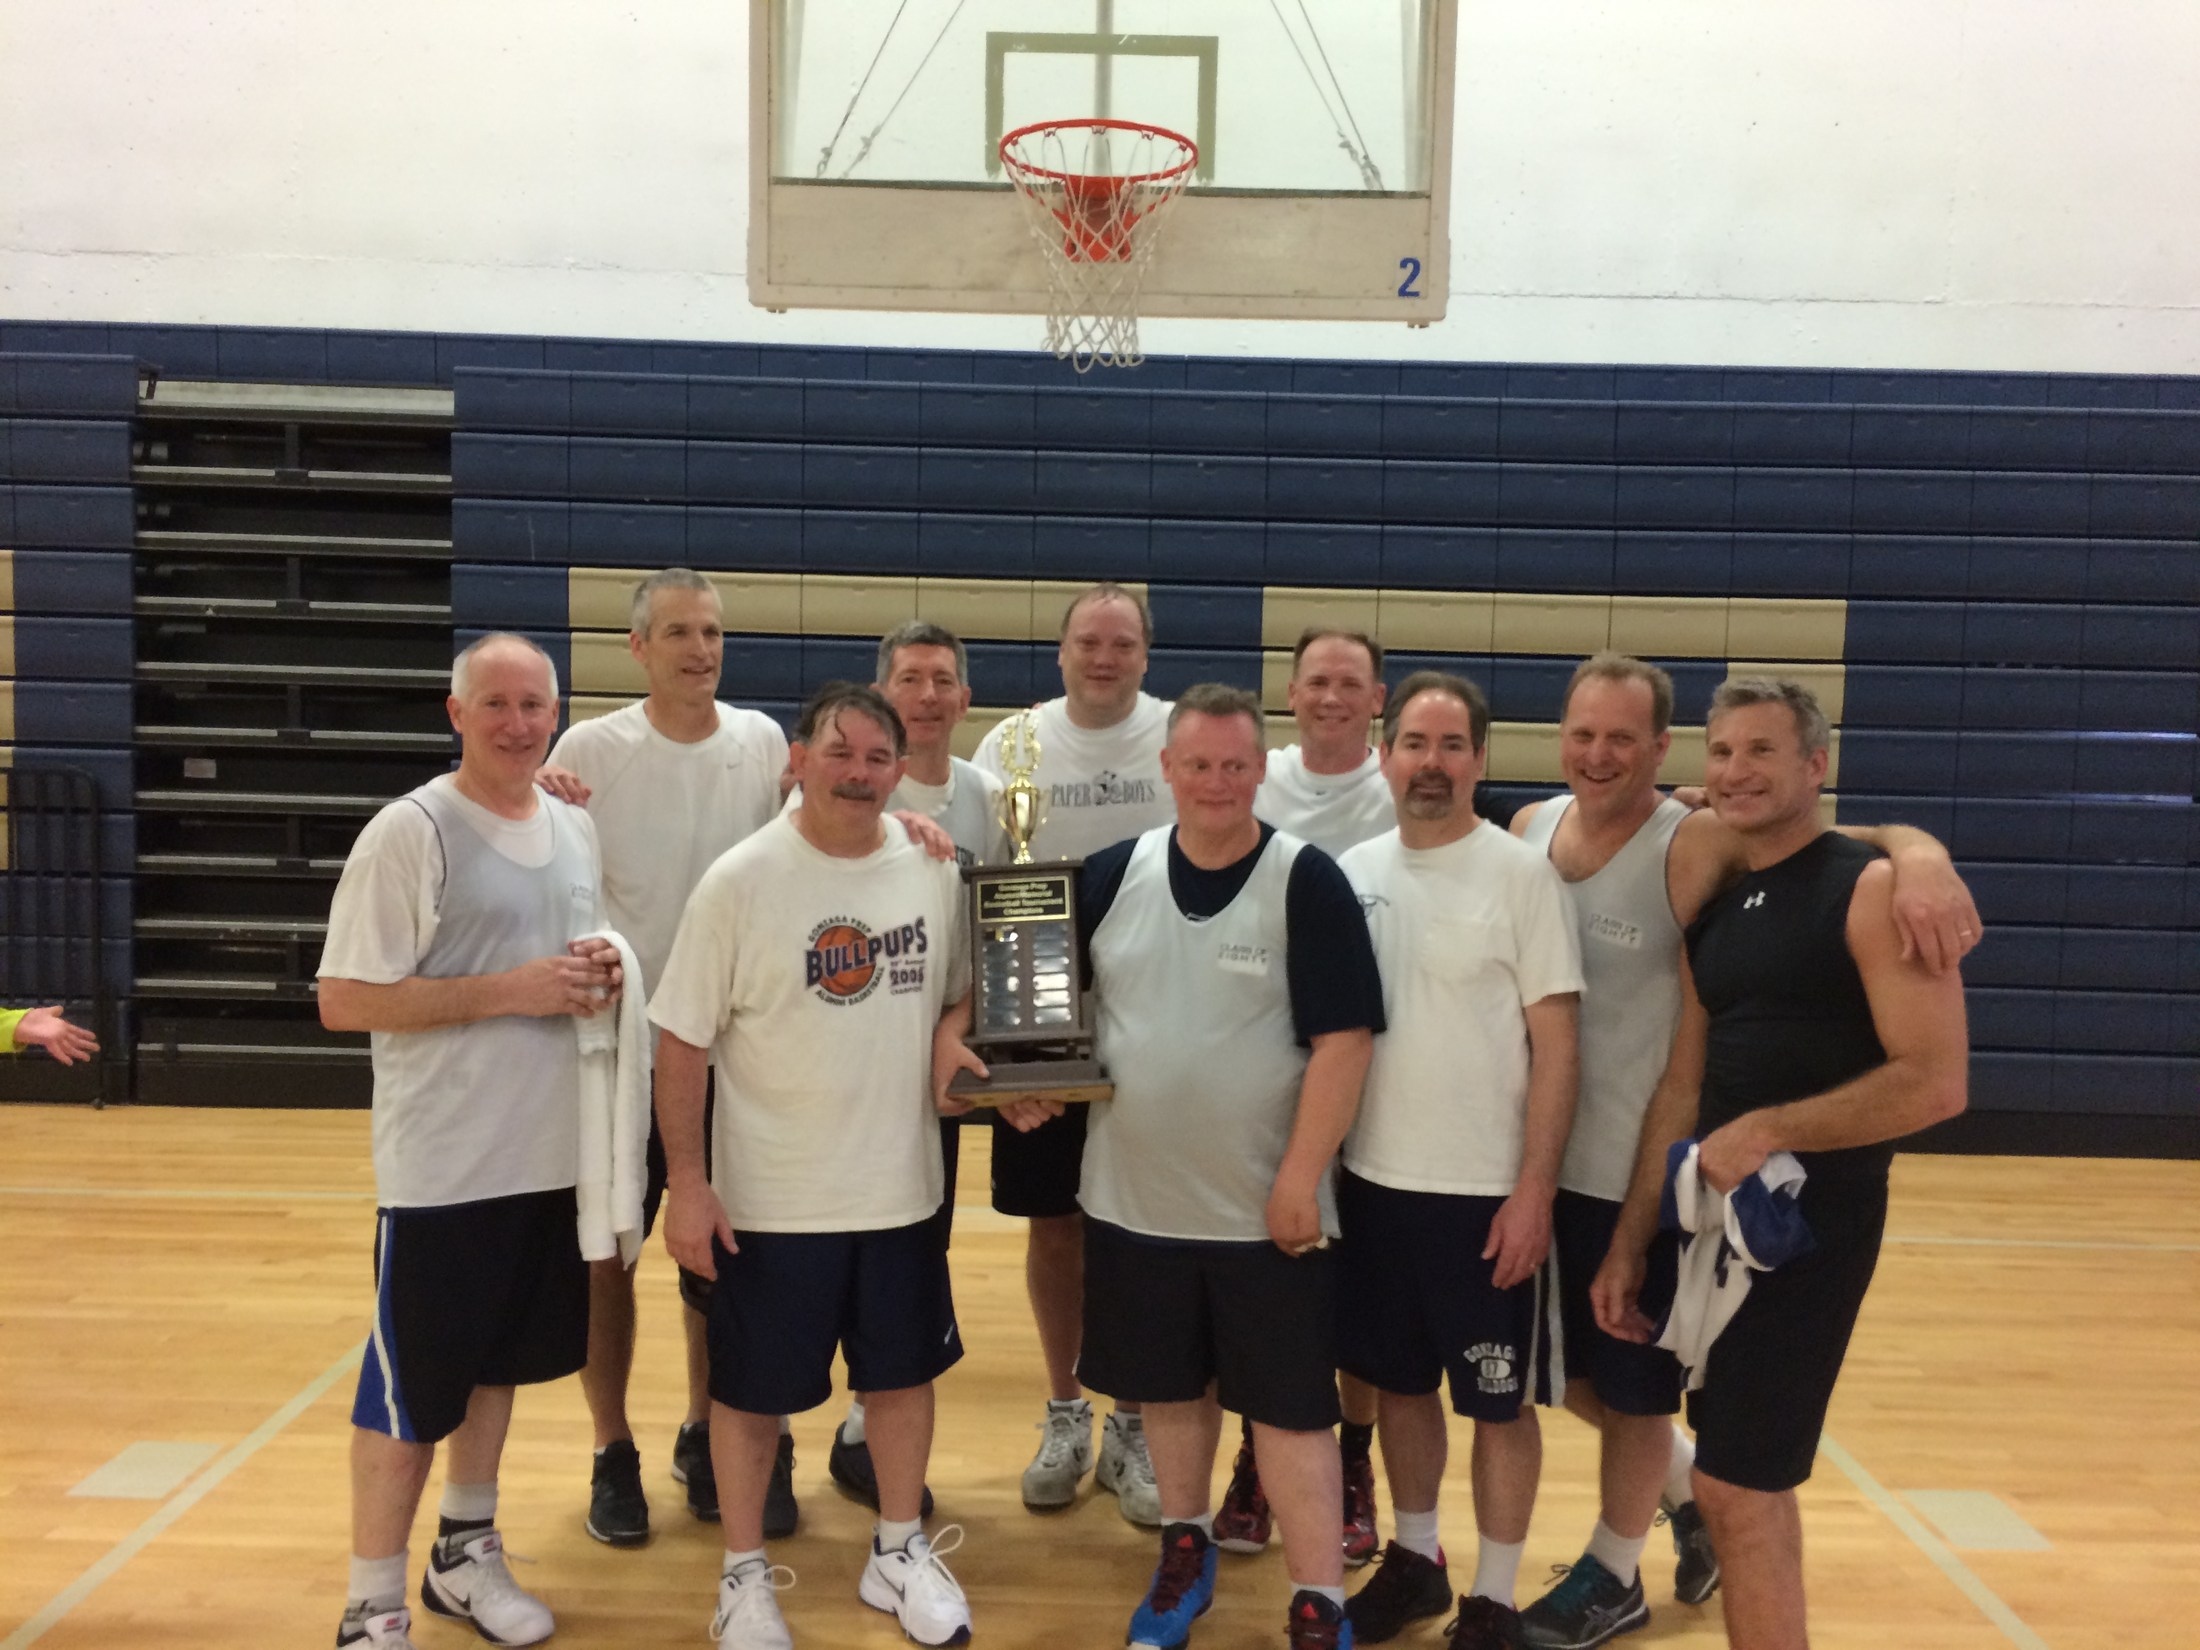 Alumni Memorial Basketball Tournament: Honoring Brian Sweeny `97